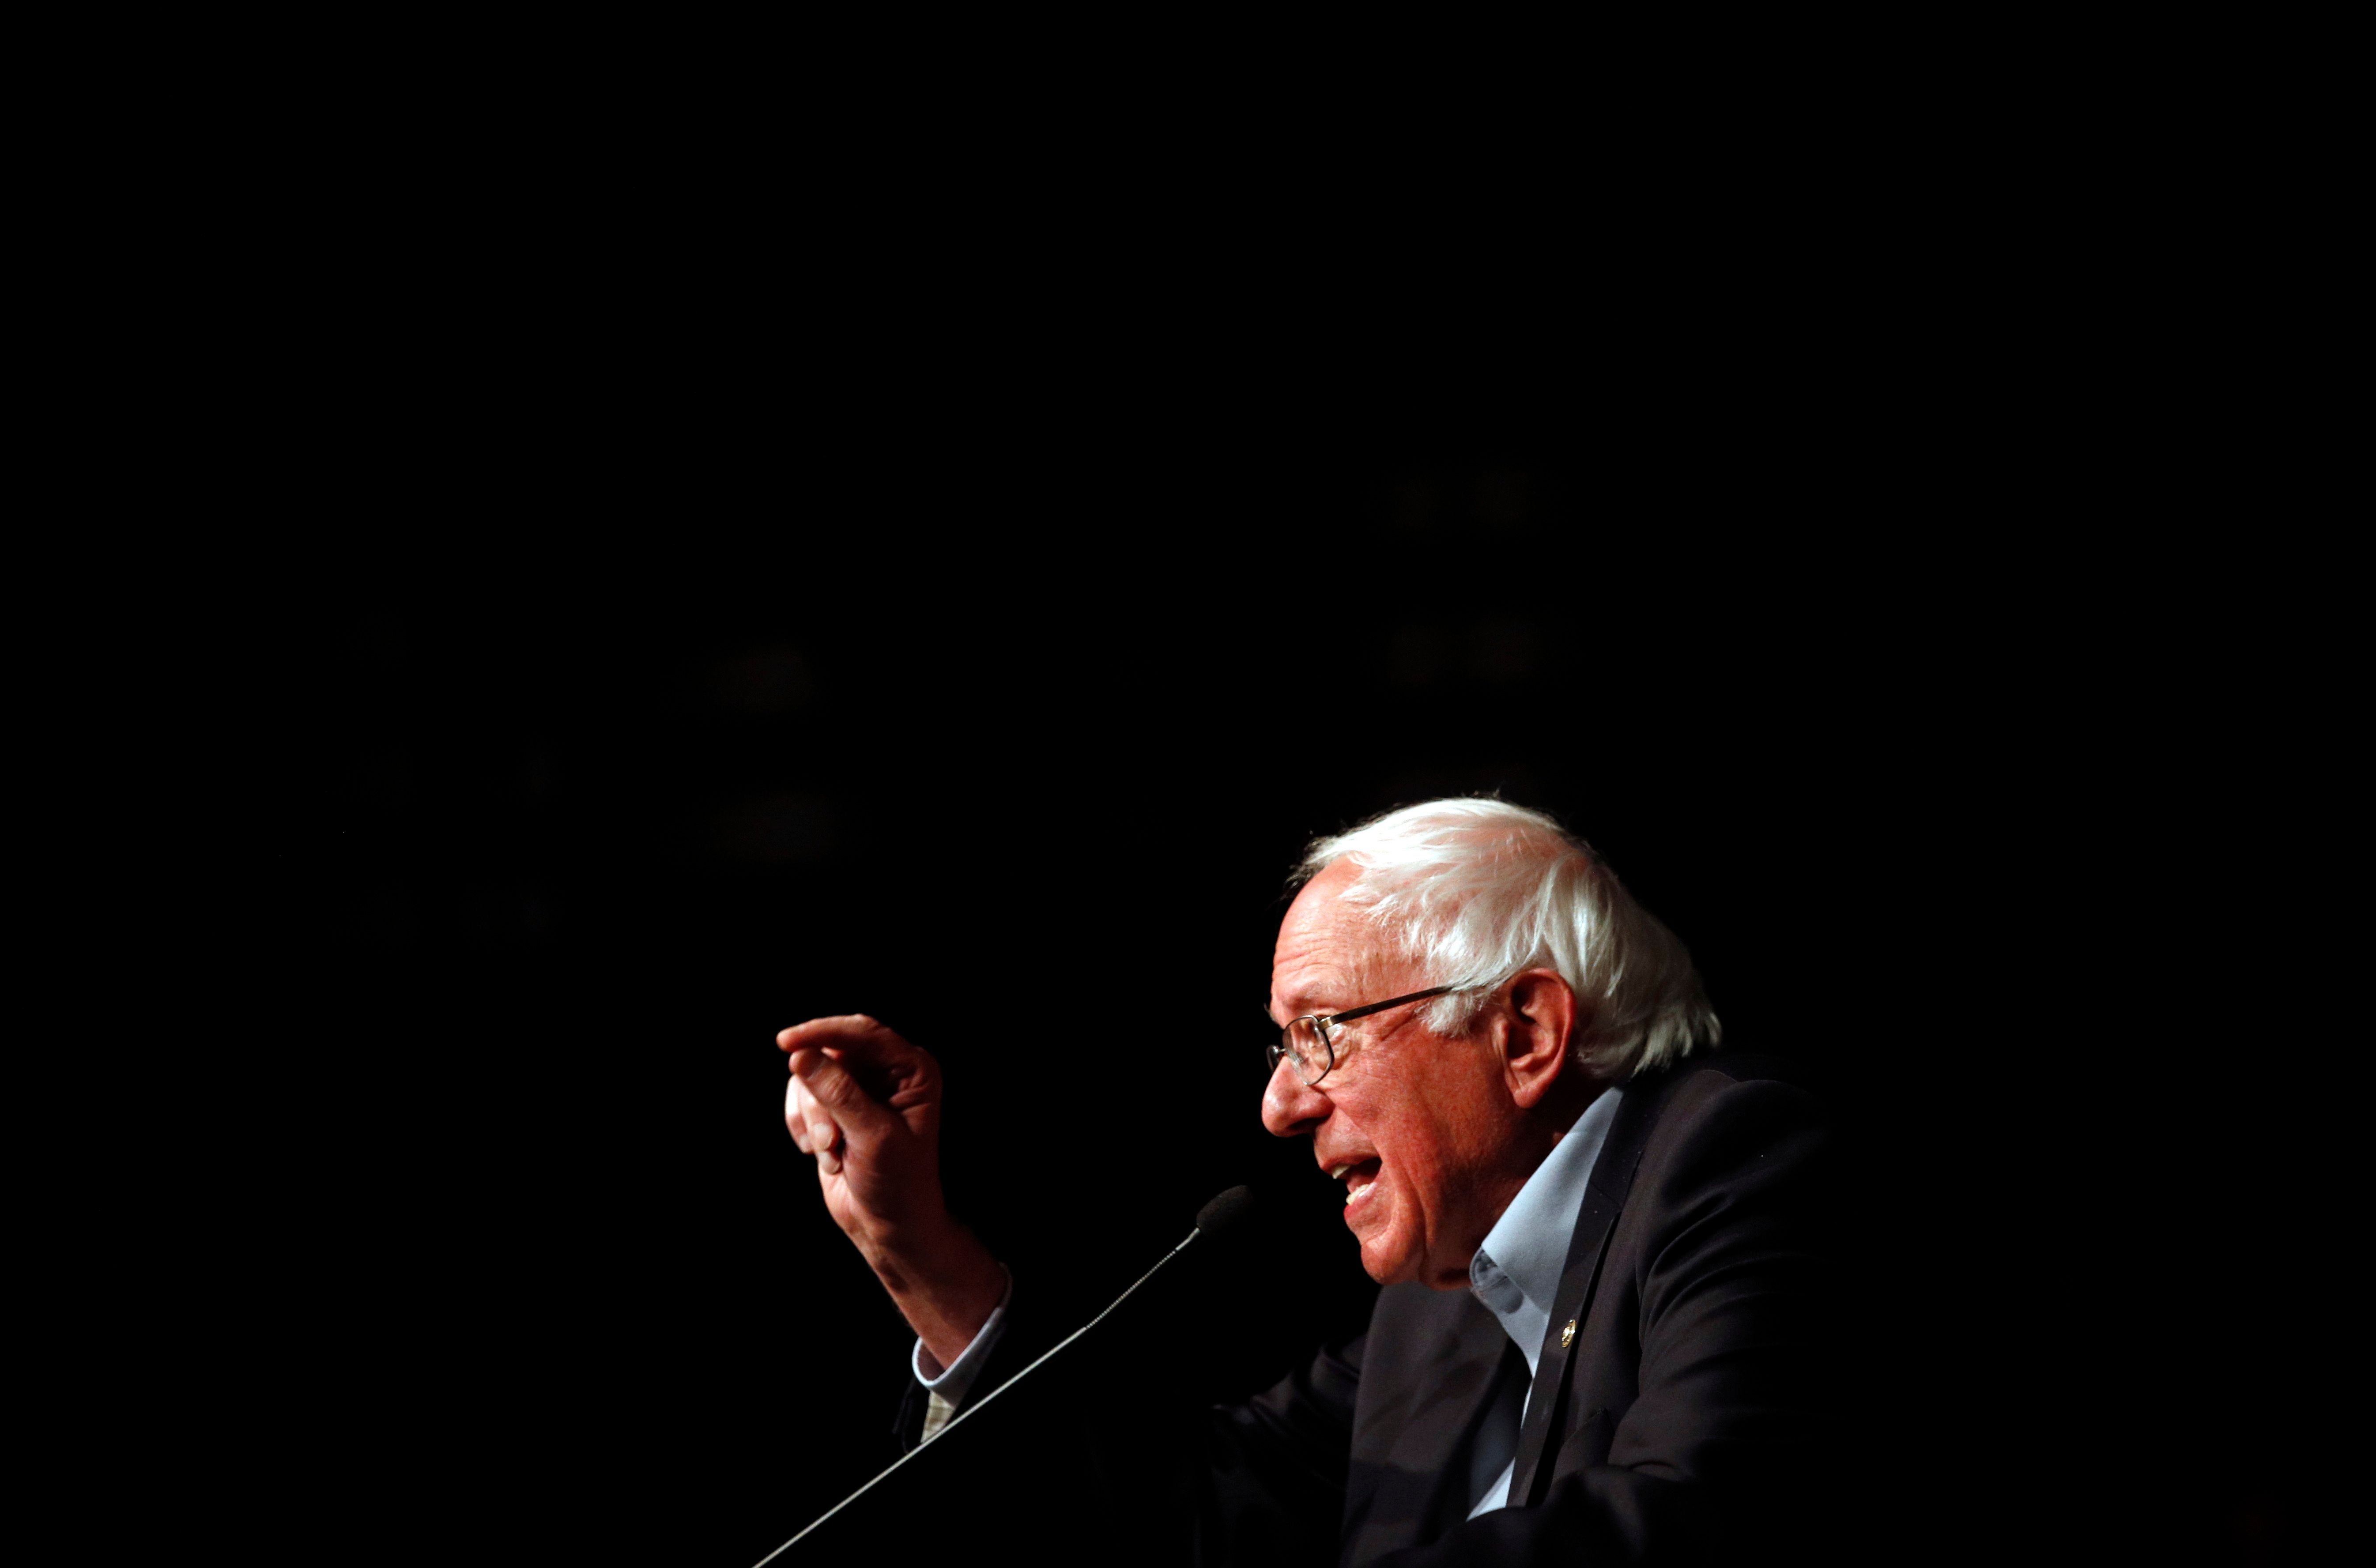 Sen. Bernie Sanders, I-Vt., speaks in support of Maryland Democratic gubernatorial candidate Ben Jealous at a campaign rally, Tuesday, Oct. 30, 2018, in Bethesda, Md. Jealous is running against incumbent Gov. Larry Hogan. (AP Photo/Patrick Semansky)